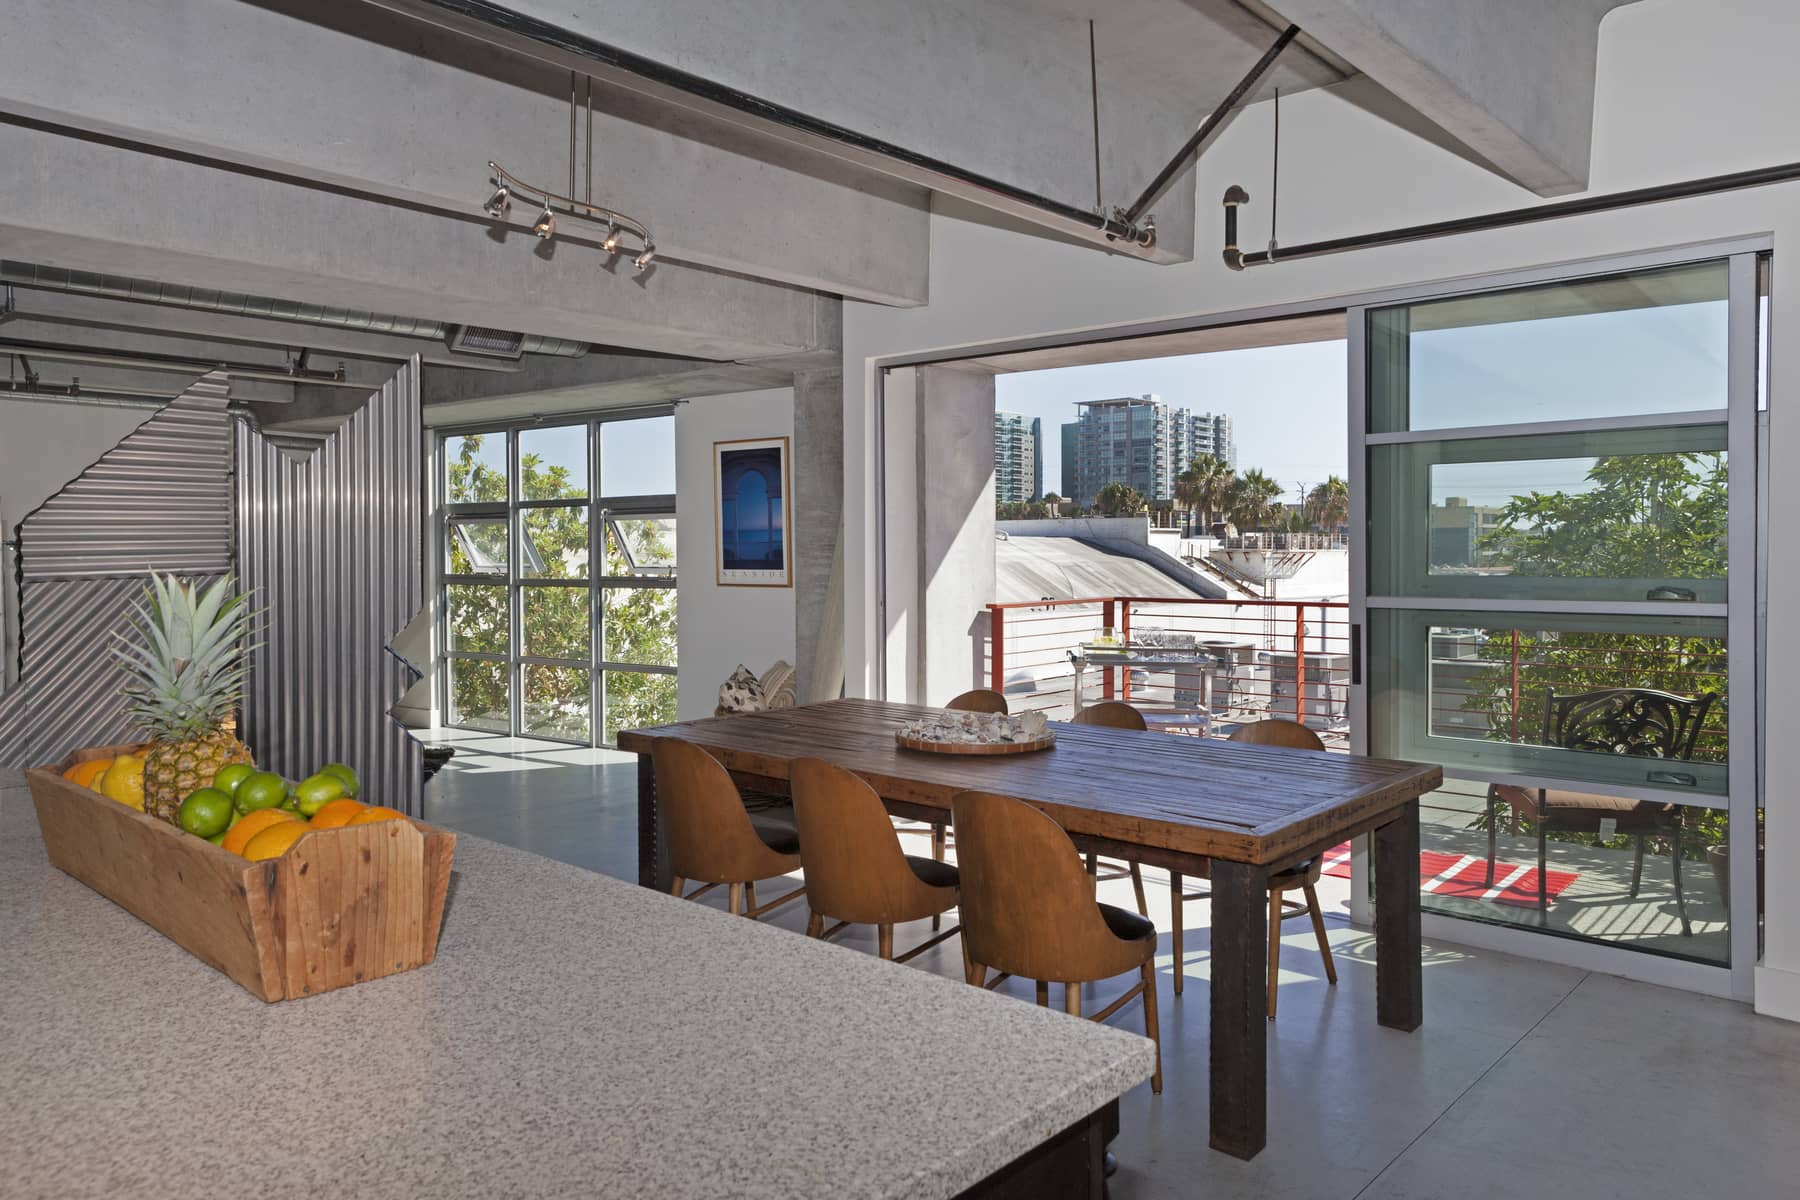 Space and light. That's what this home's interior is all about. And thanks to the location of this west-facing end-unit, you'll enjoy the beautiful glow of magic hour filling your home every day as the sun recedes over the horizon, just beyond your balcony.